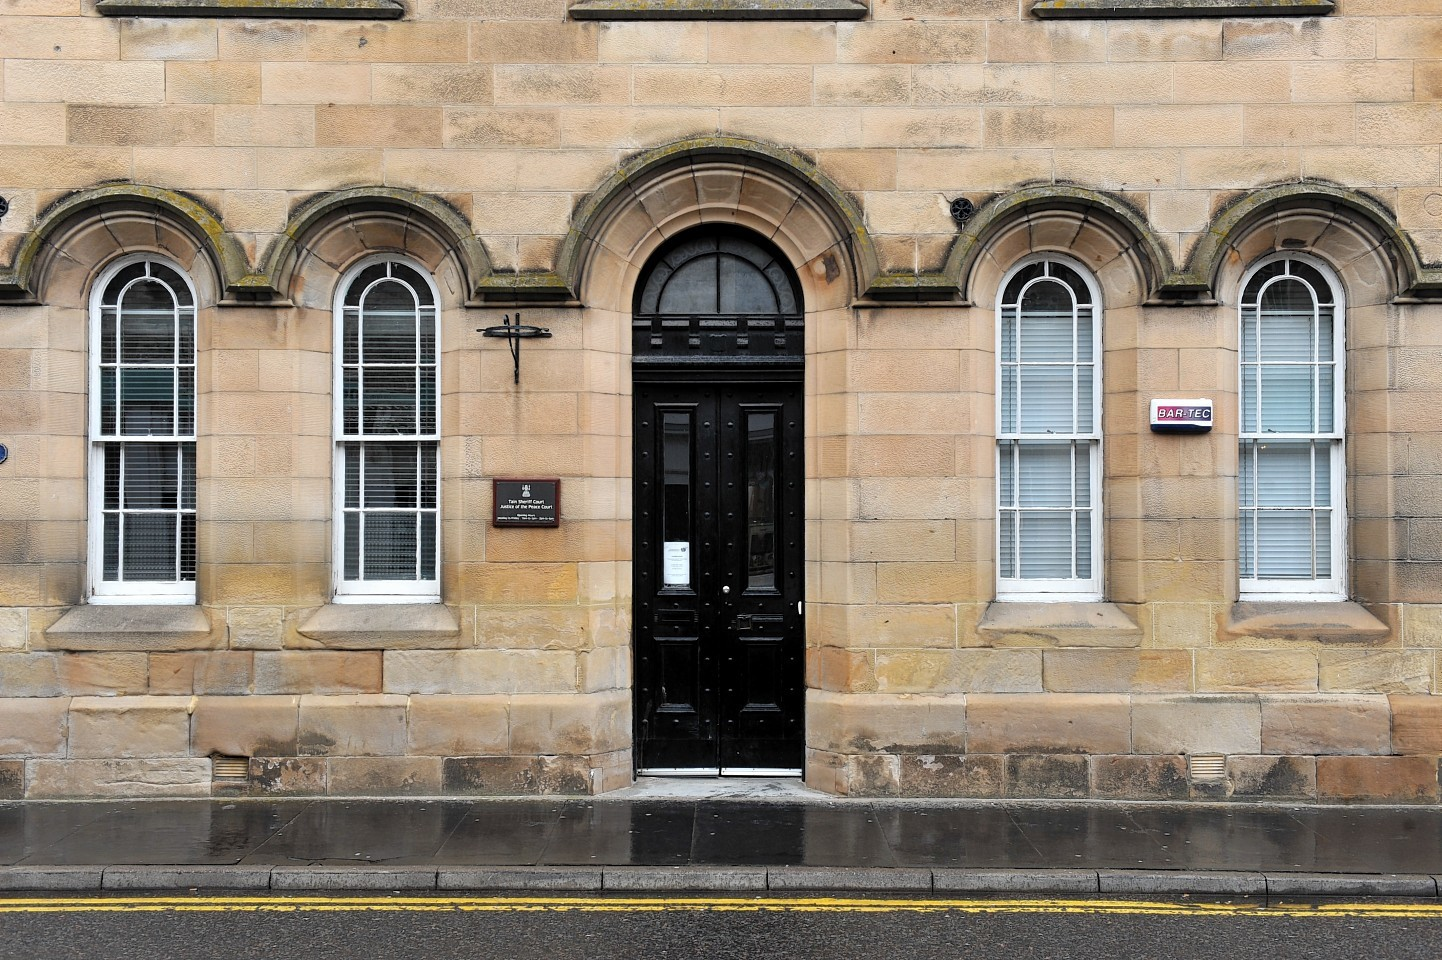 Tain Sheriff Court